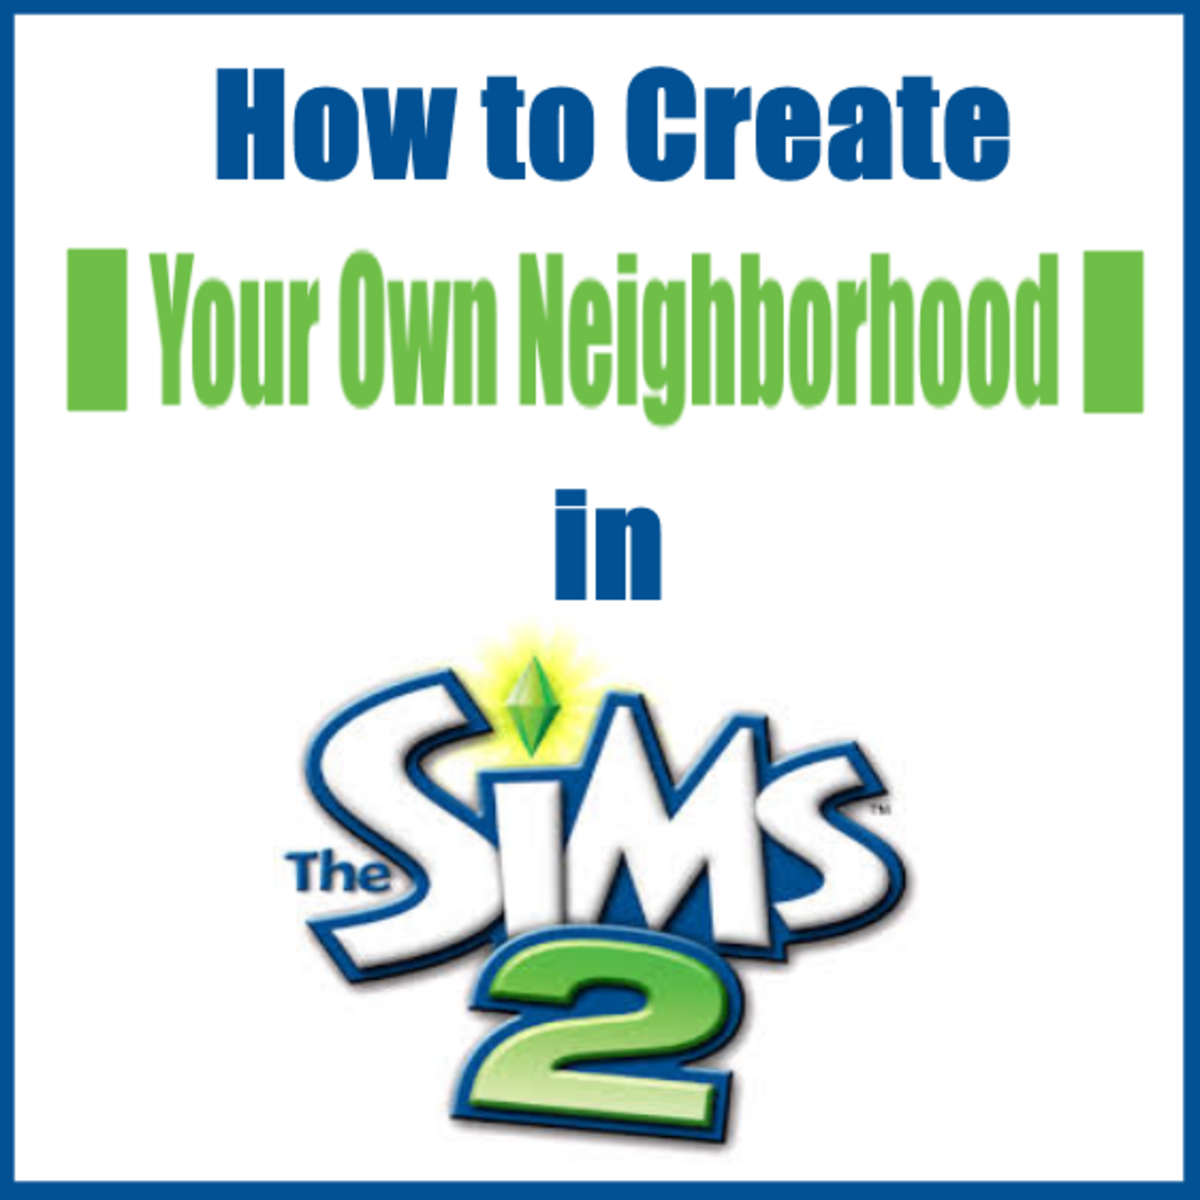 How to Make Your Own Neighborhood in The Sims 2